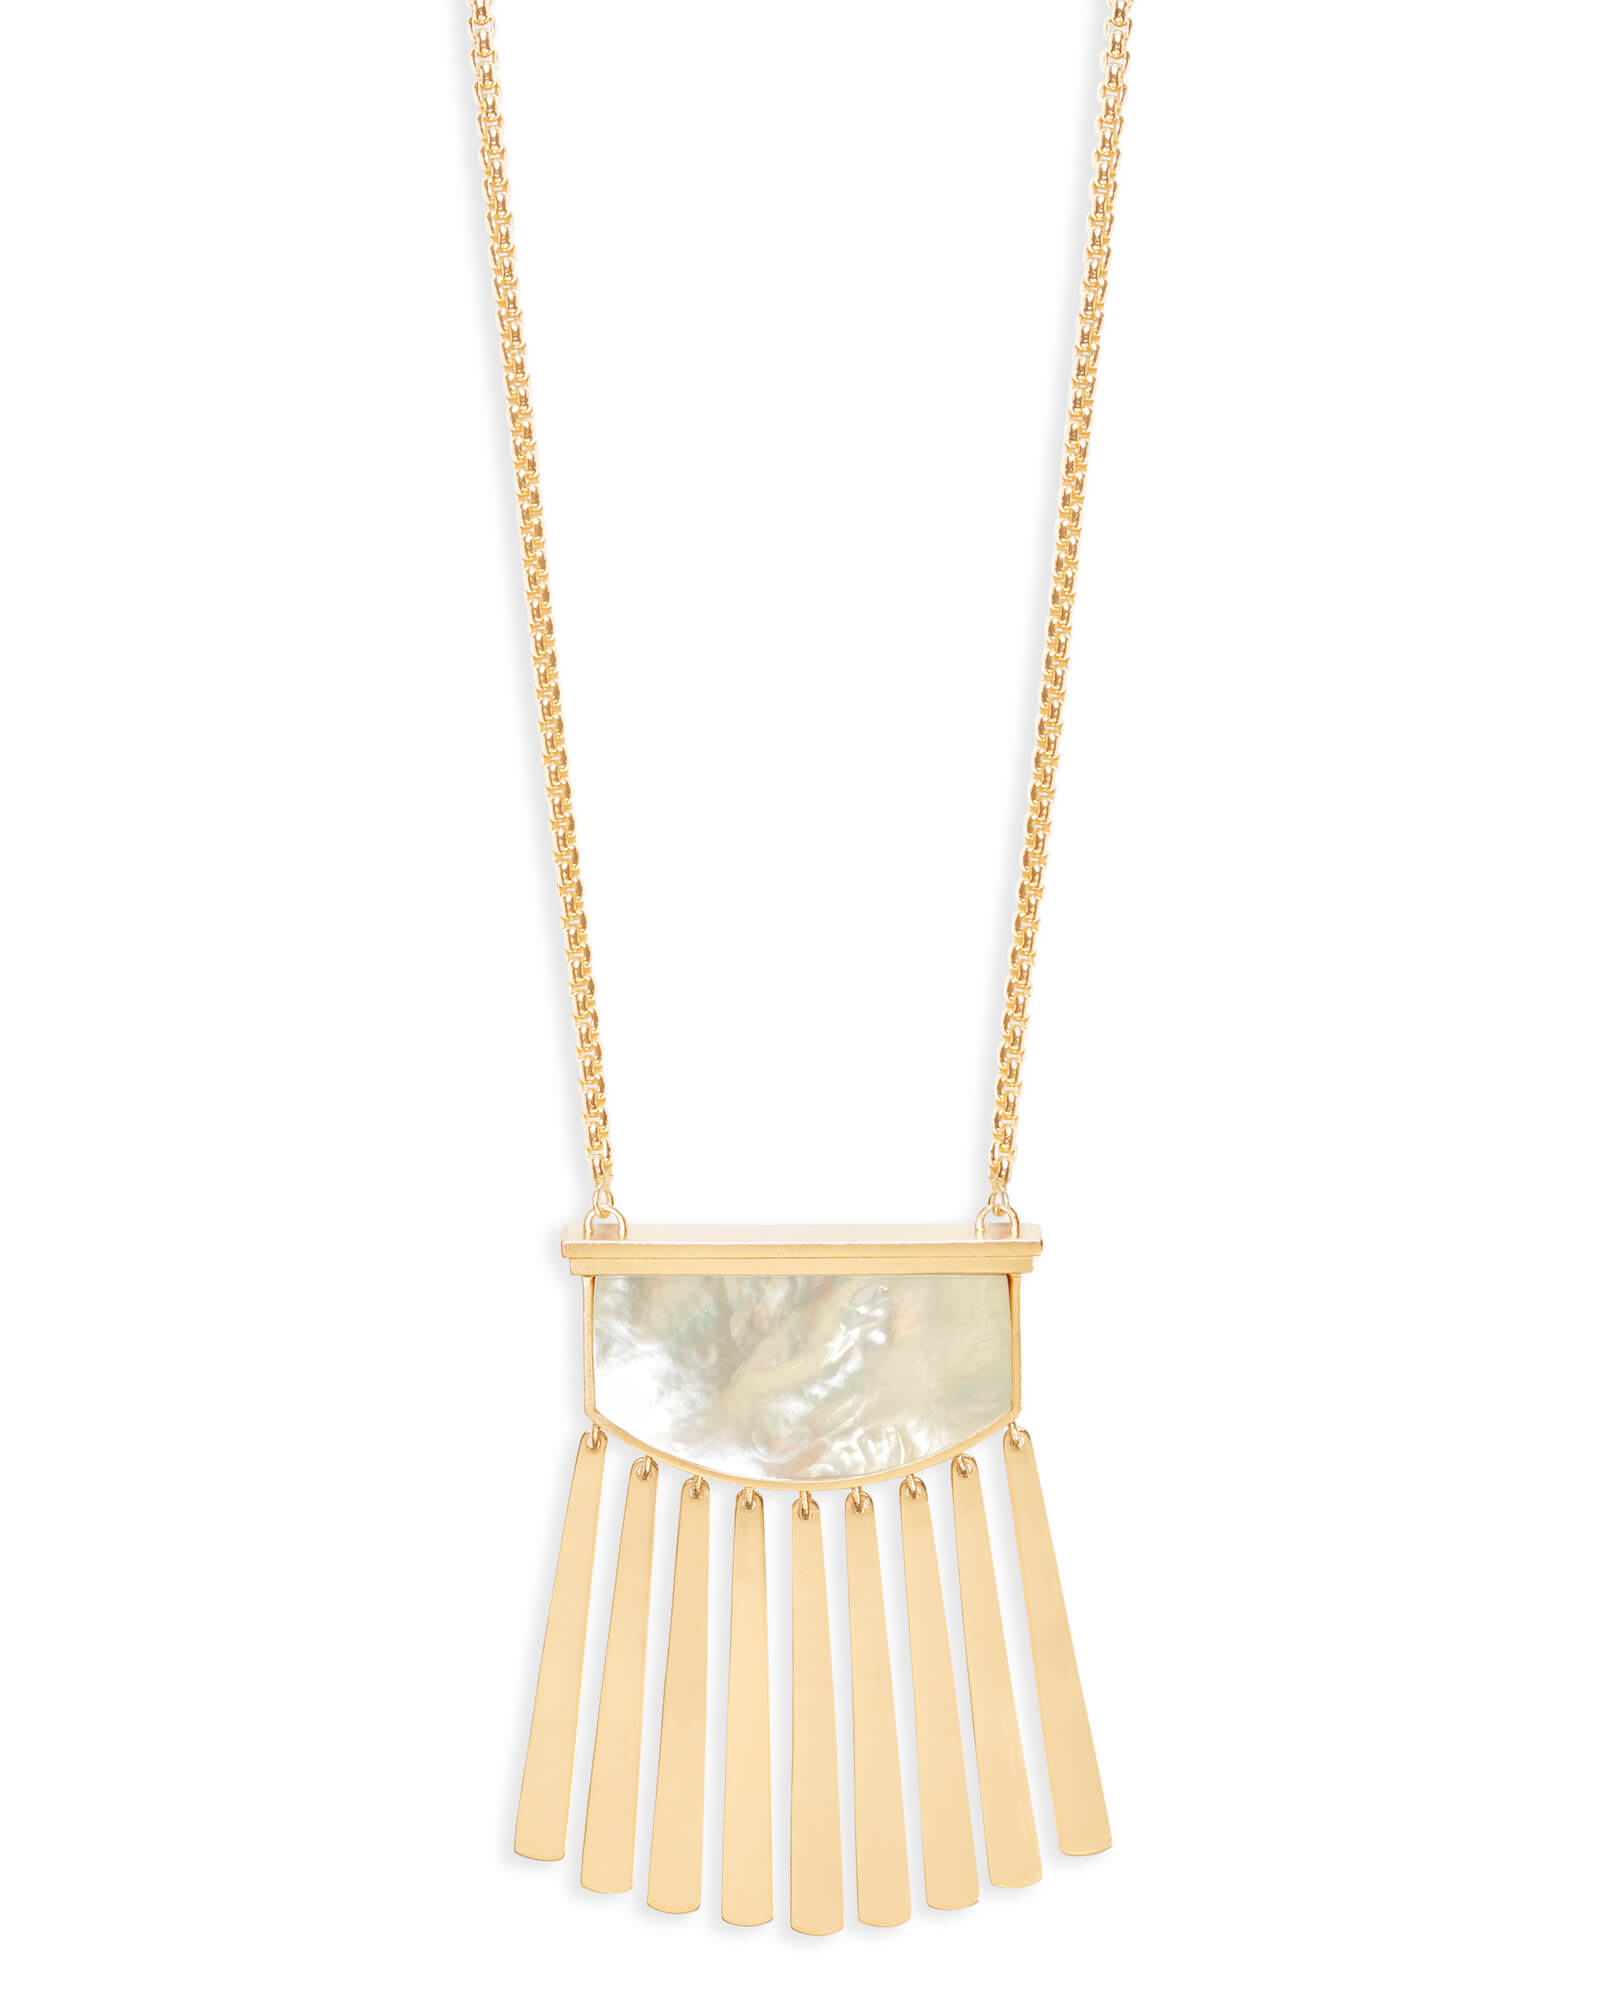 Ellen Long Pendant Necklace in Ivory Pearl